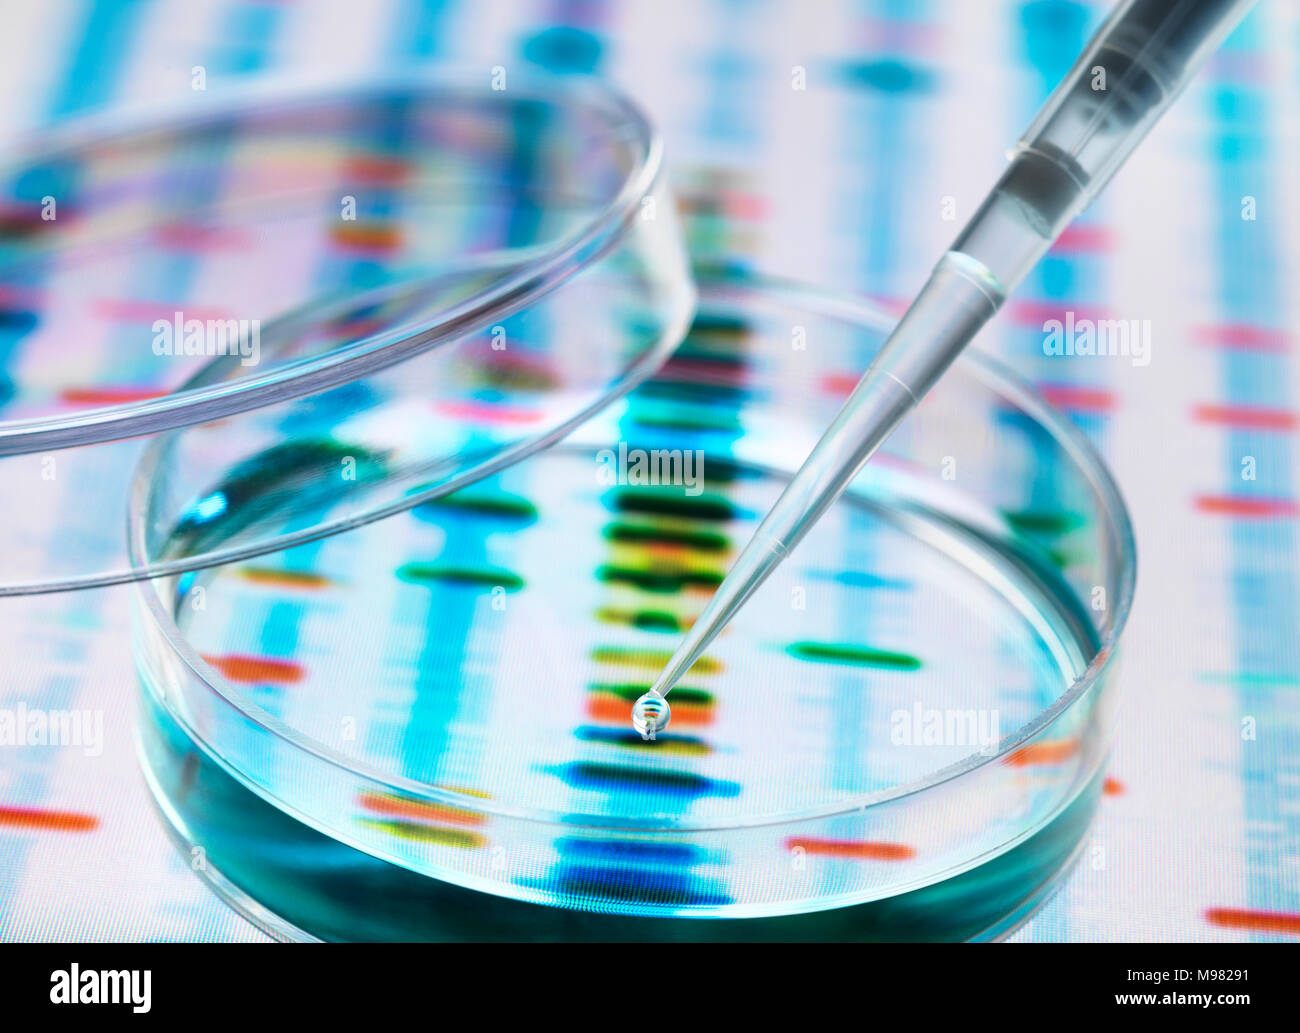 Sample of DNA being pipetted into a petri dish over genetic results Stock Photo